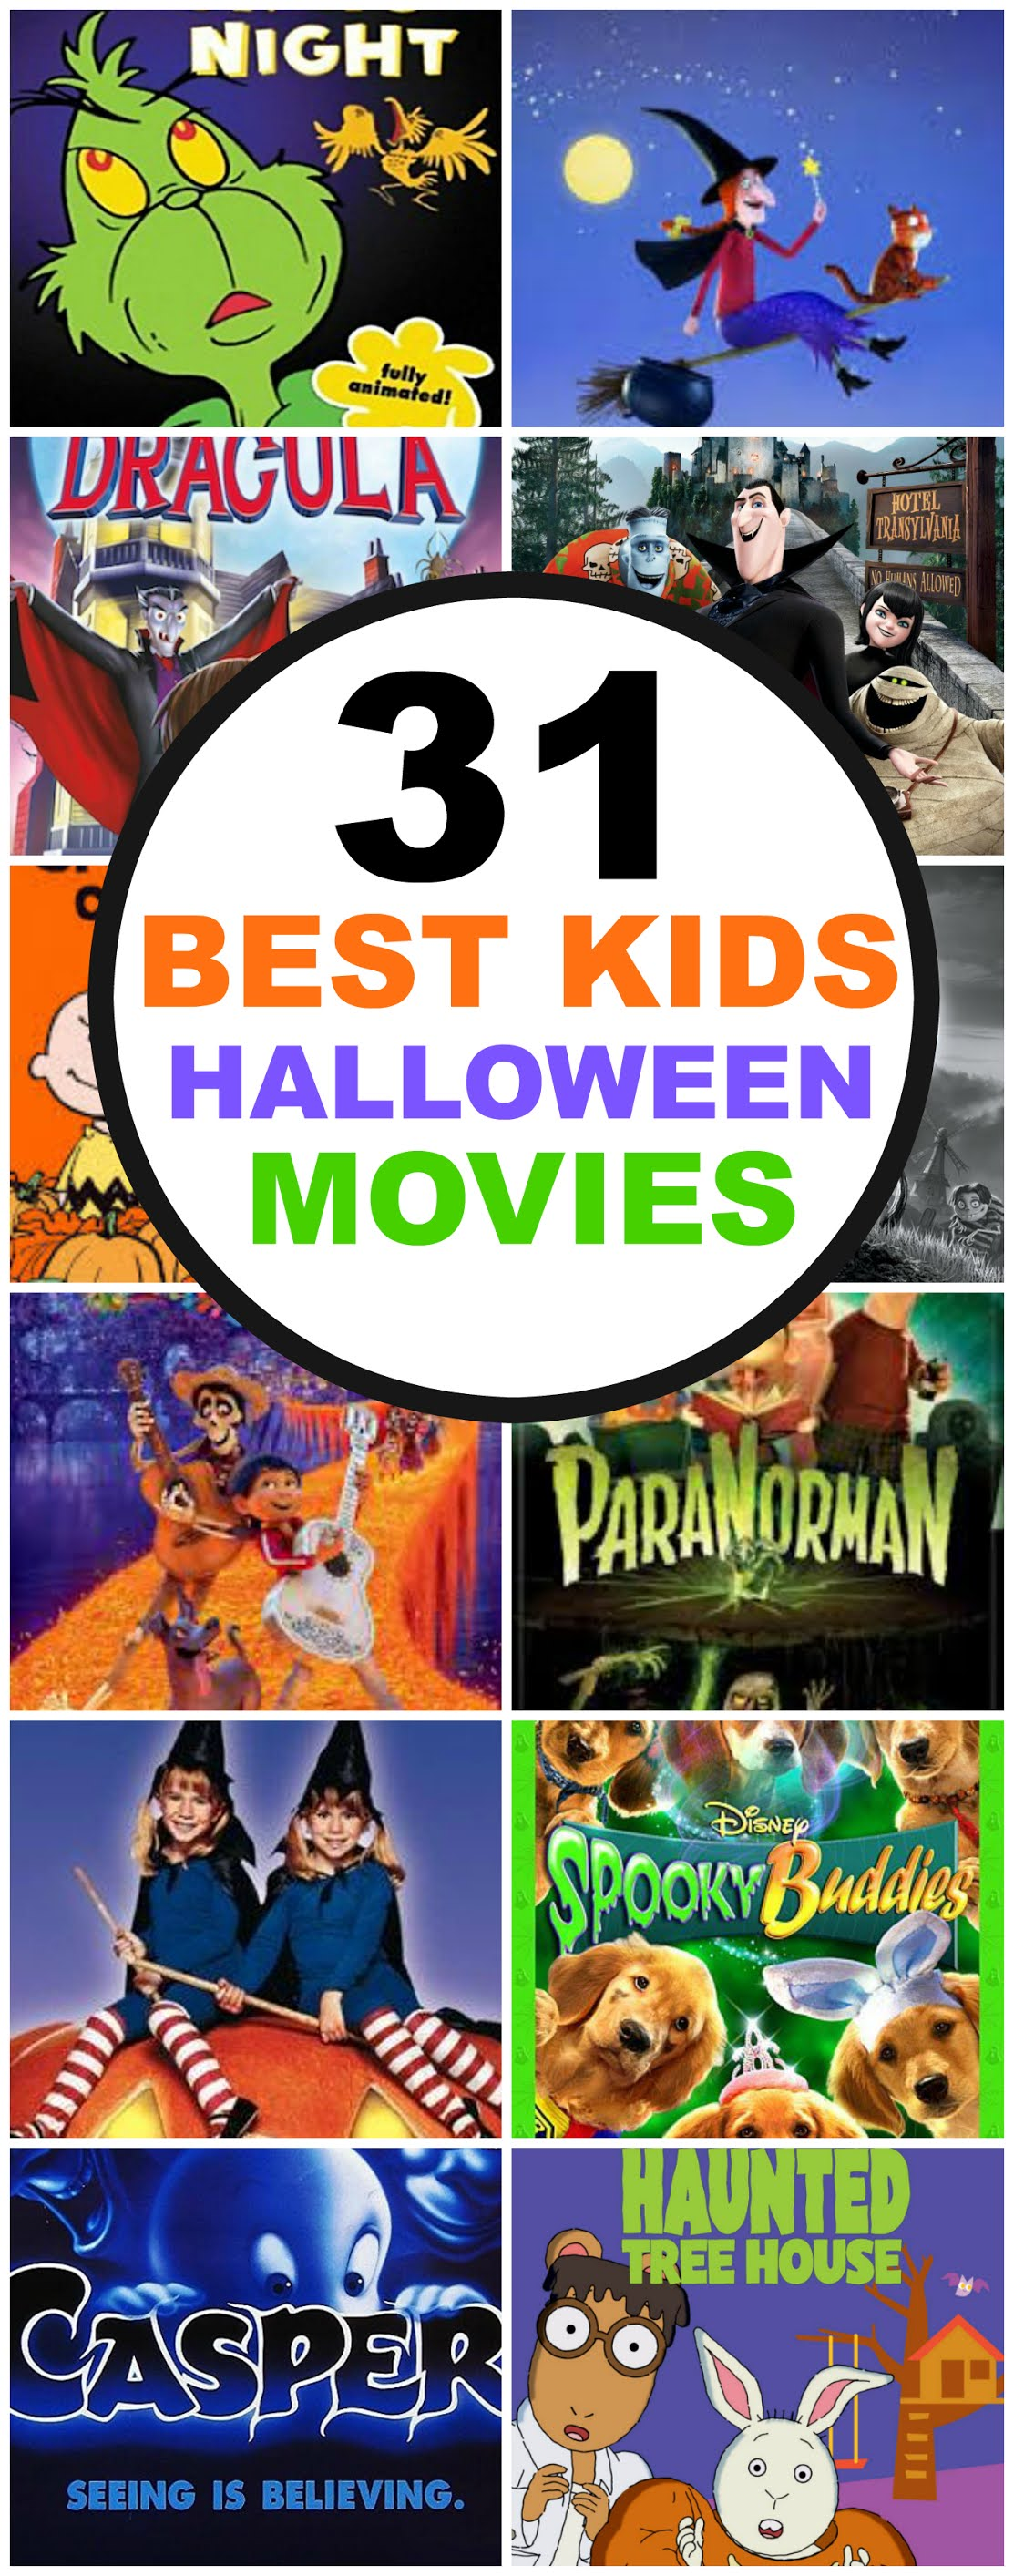 Best Halloween Movies. Halloween movies for tweens. 90s Kids Halloween movies. Halloween-themed movies. Innocent Halloween movies. Rotten tomatoes best kids Halloween movies. 90s Halloween movies. Fun Halloween movies. #Halloween #kids #Movies #fall #fun #familyfun